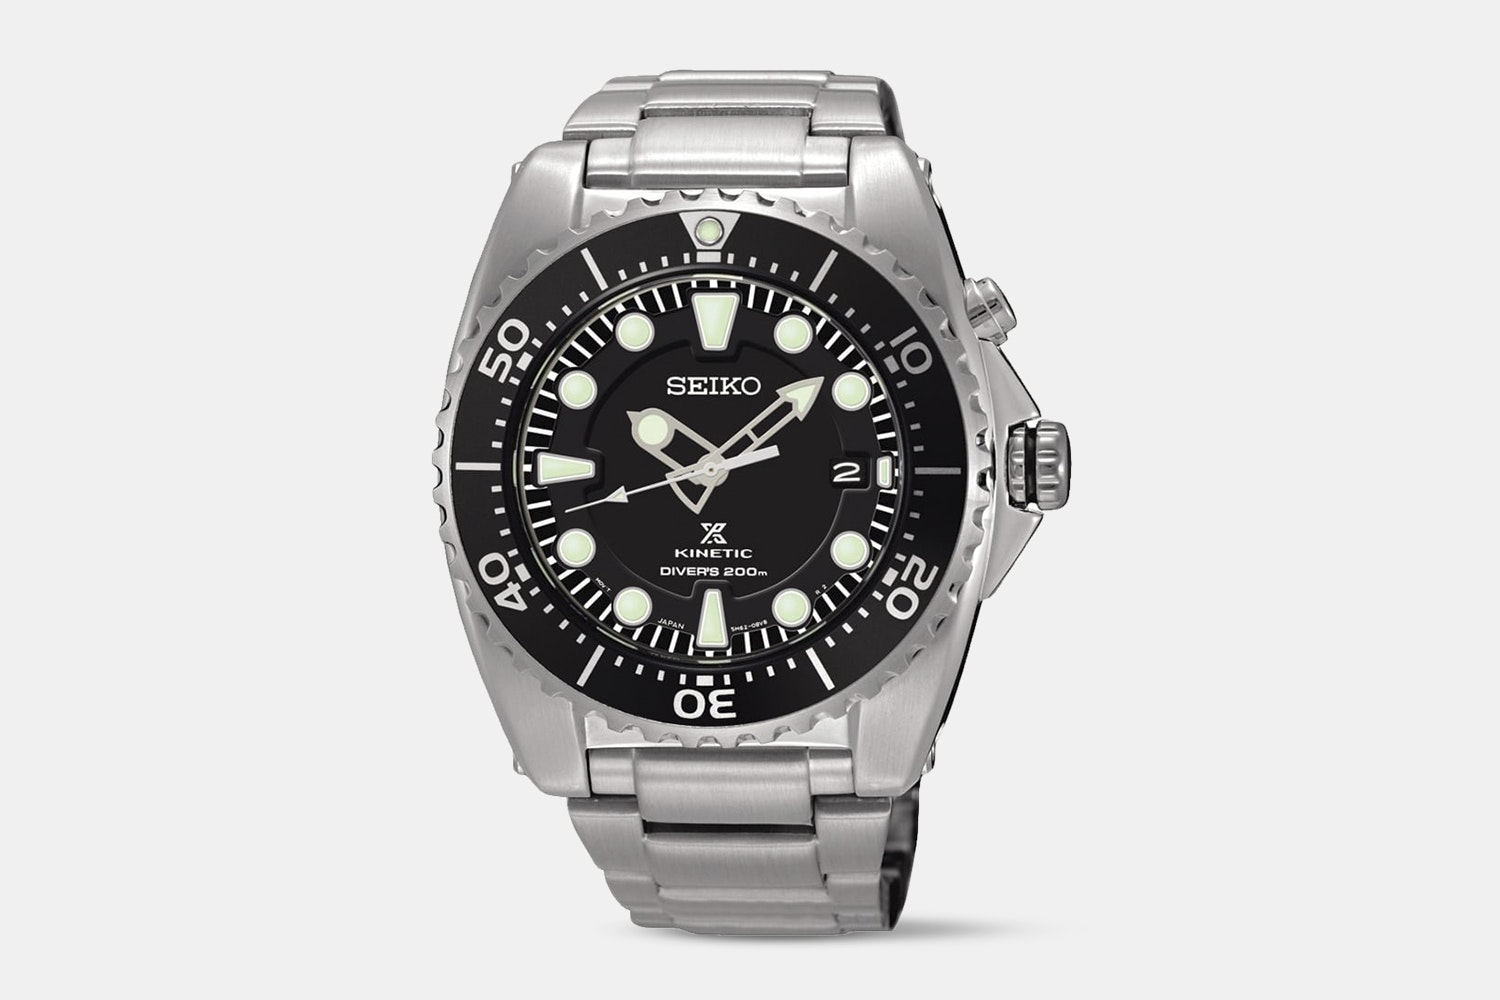 Seiko Prospex Kinetic Diver's Watch